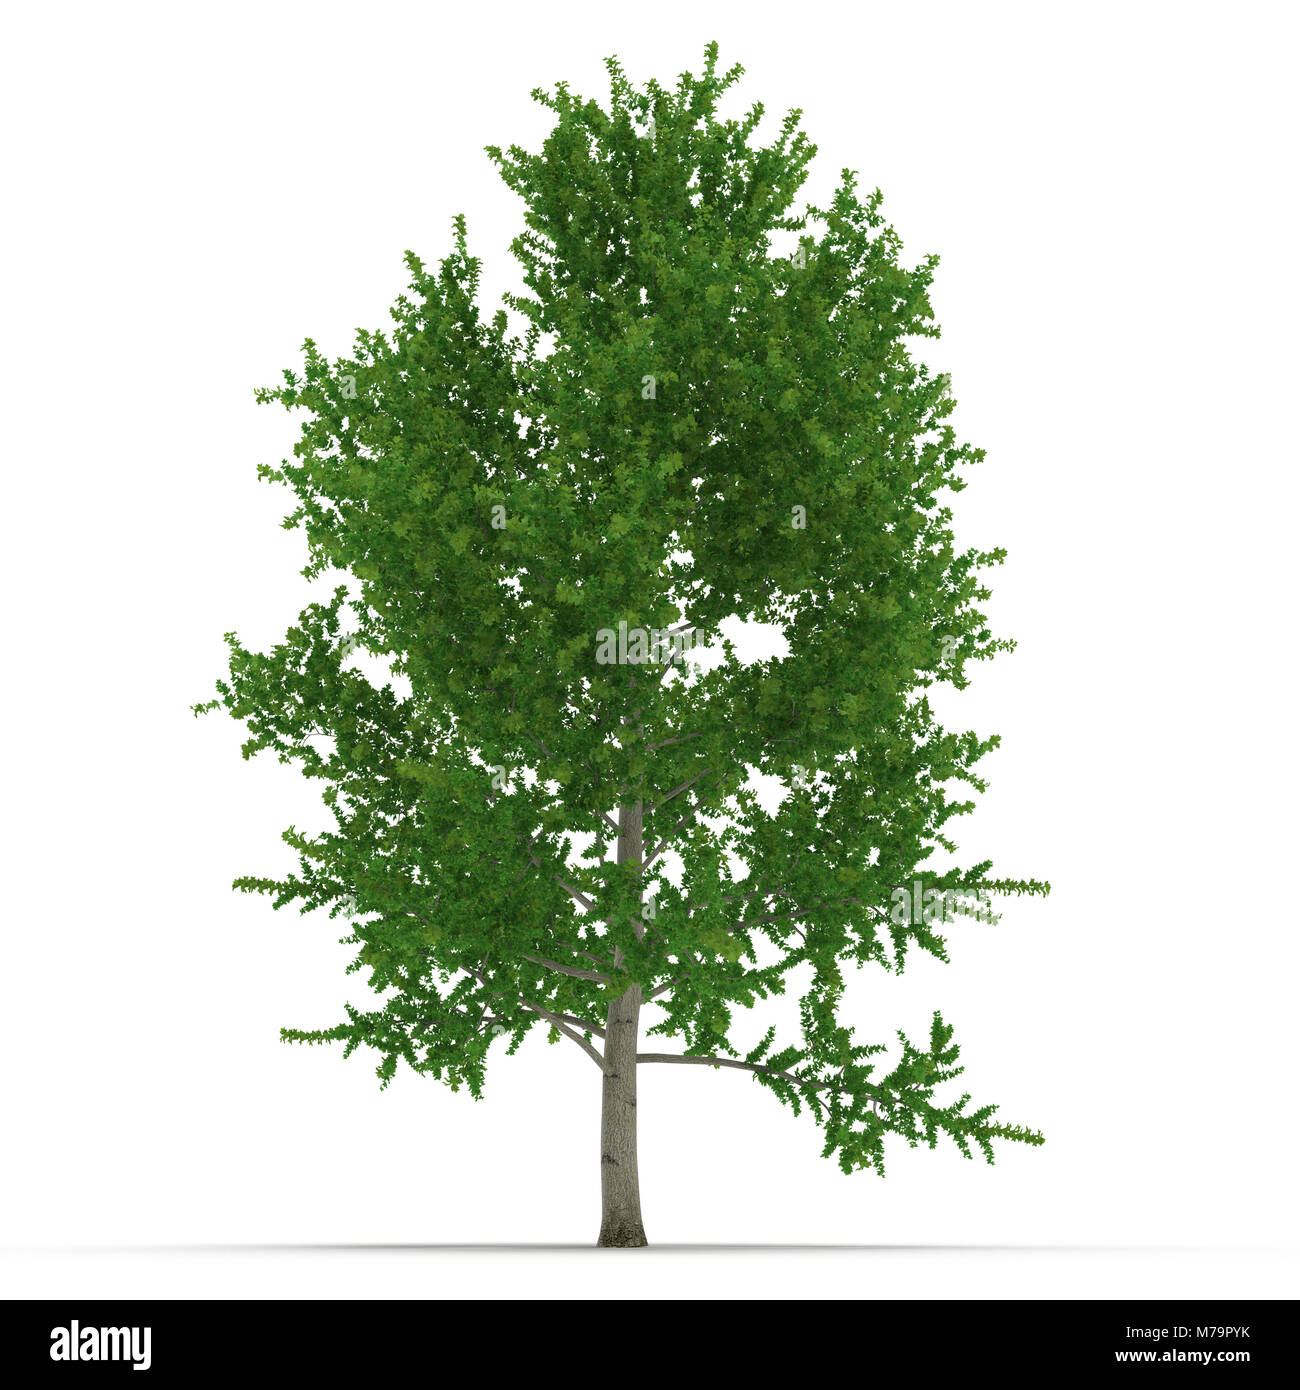 white poplar tree cut out stock images  u0026 pictures